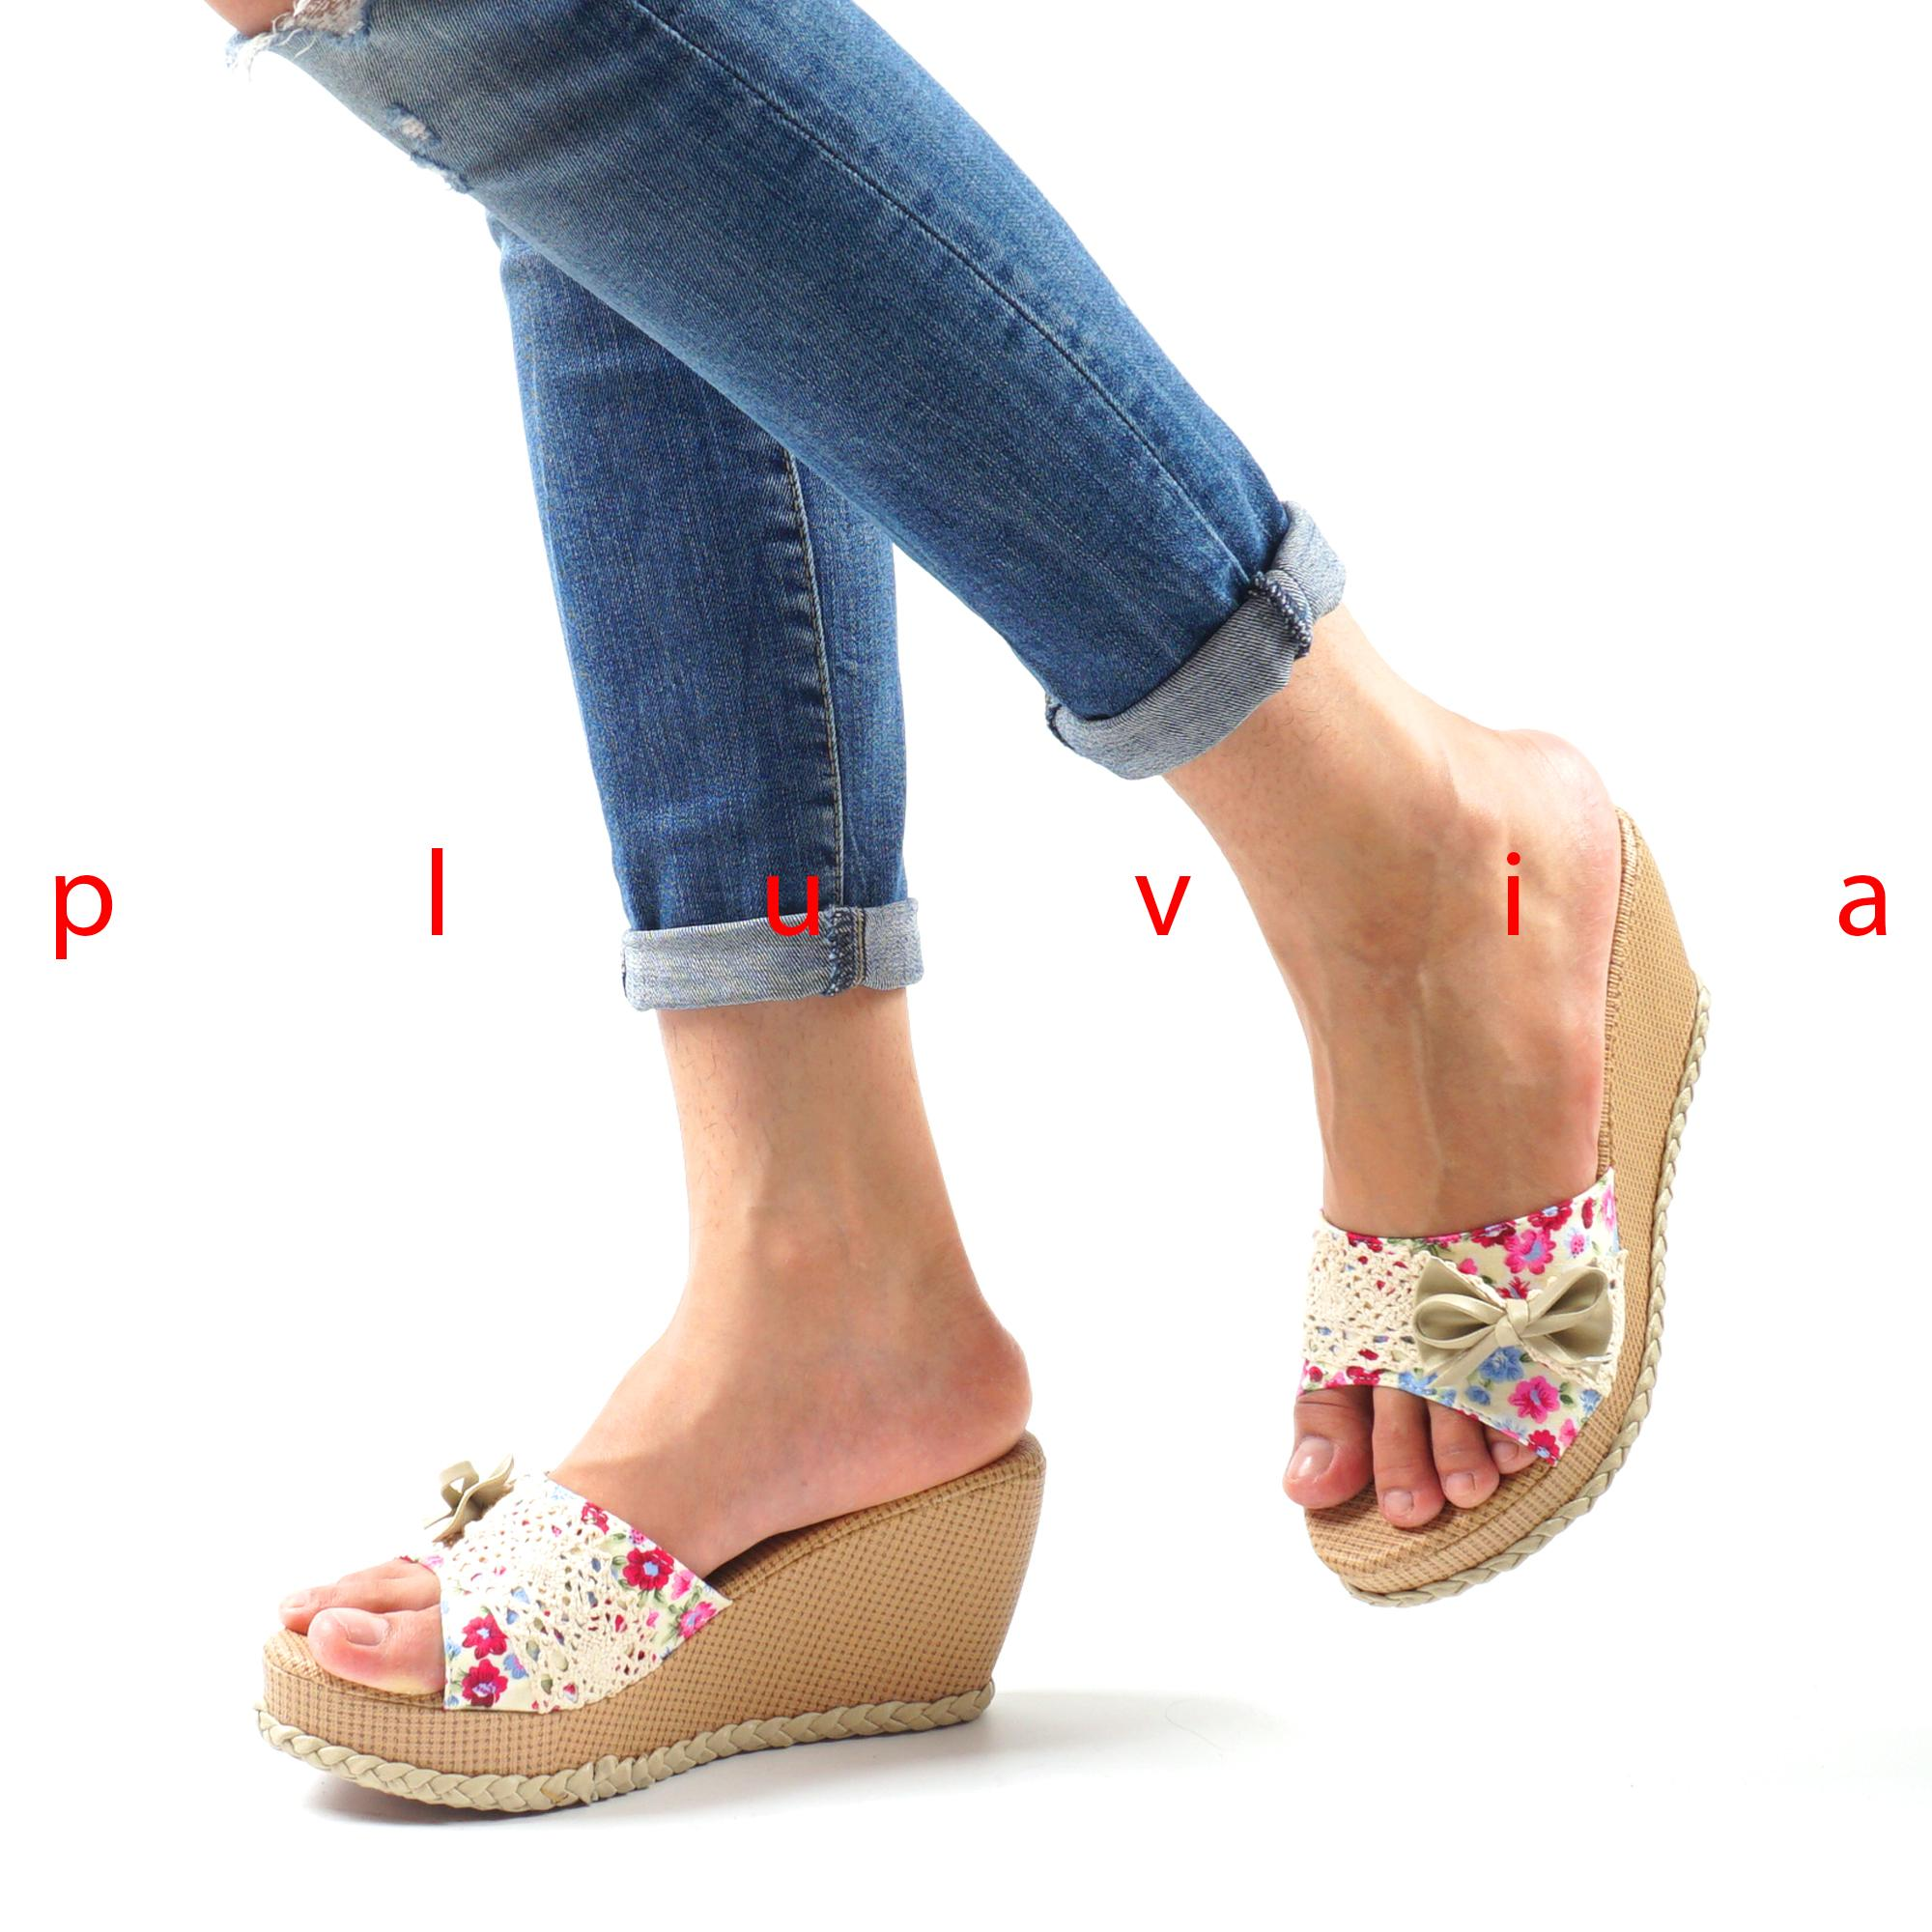 Pluvia - Sandal Wedges Wanita Ribbon Flowery IP07 - Cream | Lazada Indonesia